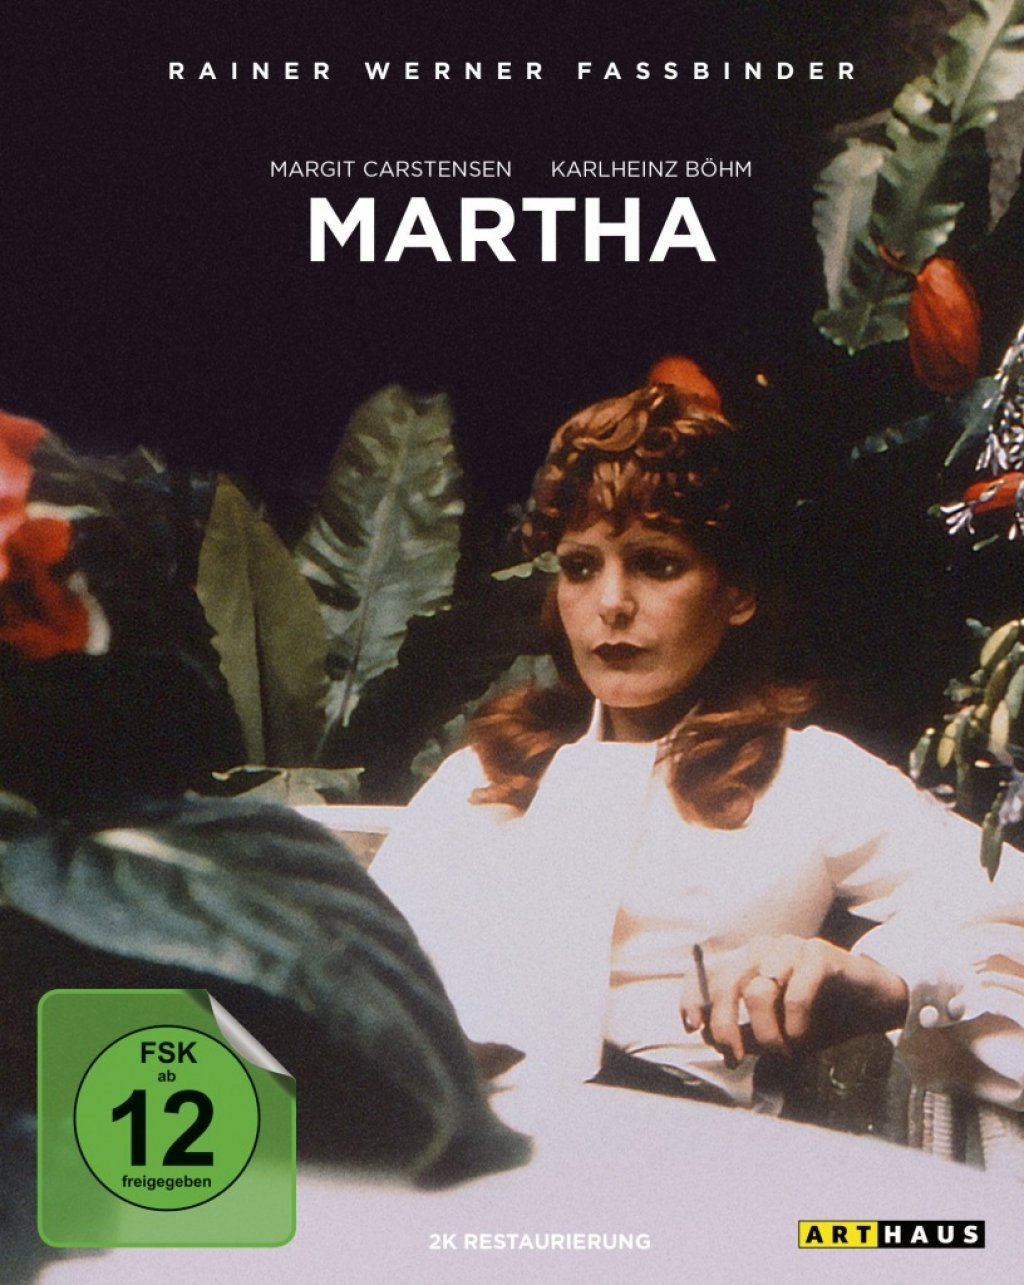 Martha - Special Edition / 2K Restaurierung (Blu-ray)